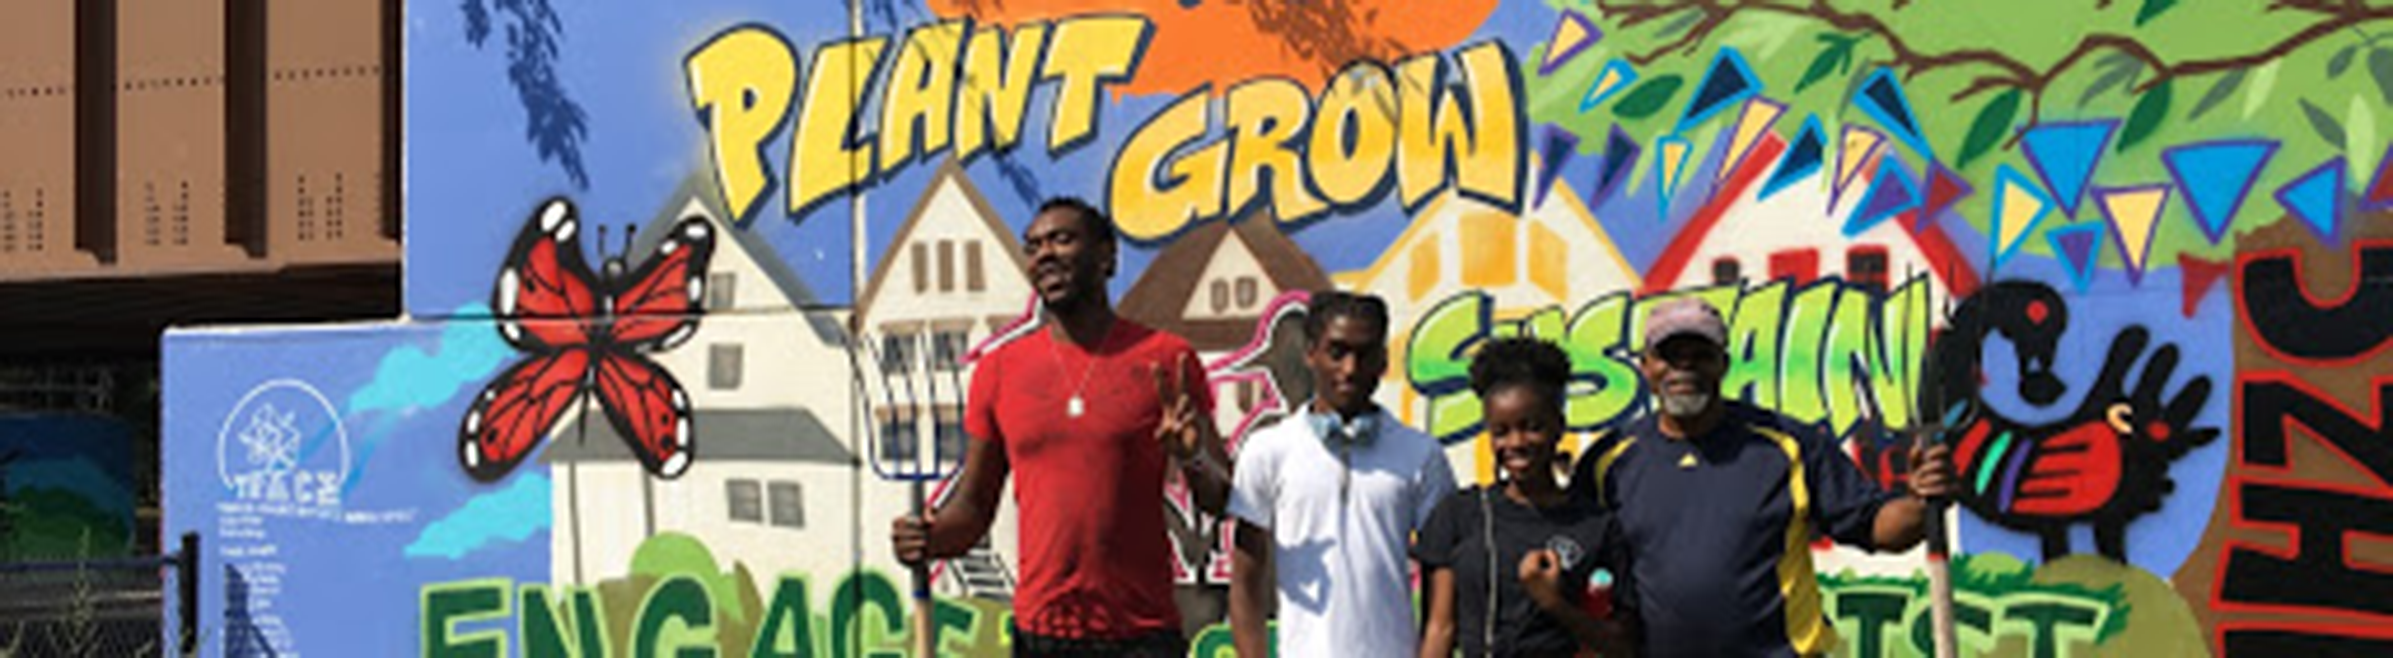 TRACErs-Najee-Grace-and-Dartonya-Wright-in-front-2017-TRACE-mural-with-Zanjabil-Gardens-owner-Kamal-Rashid-and-volunteer